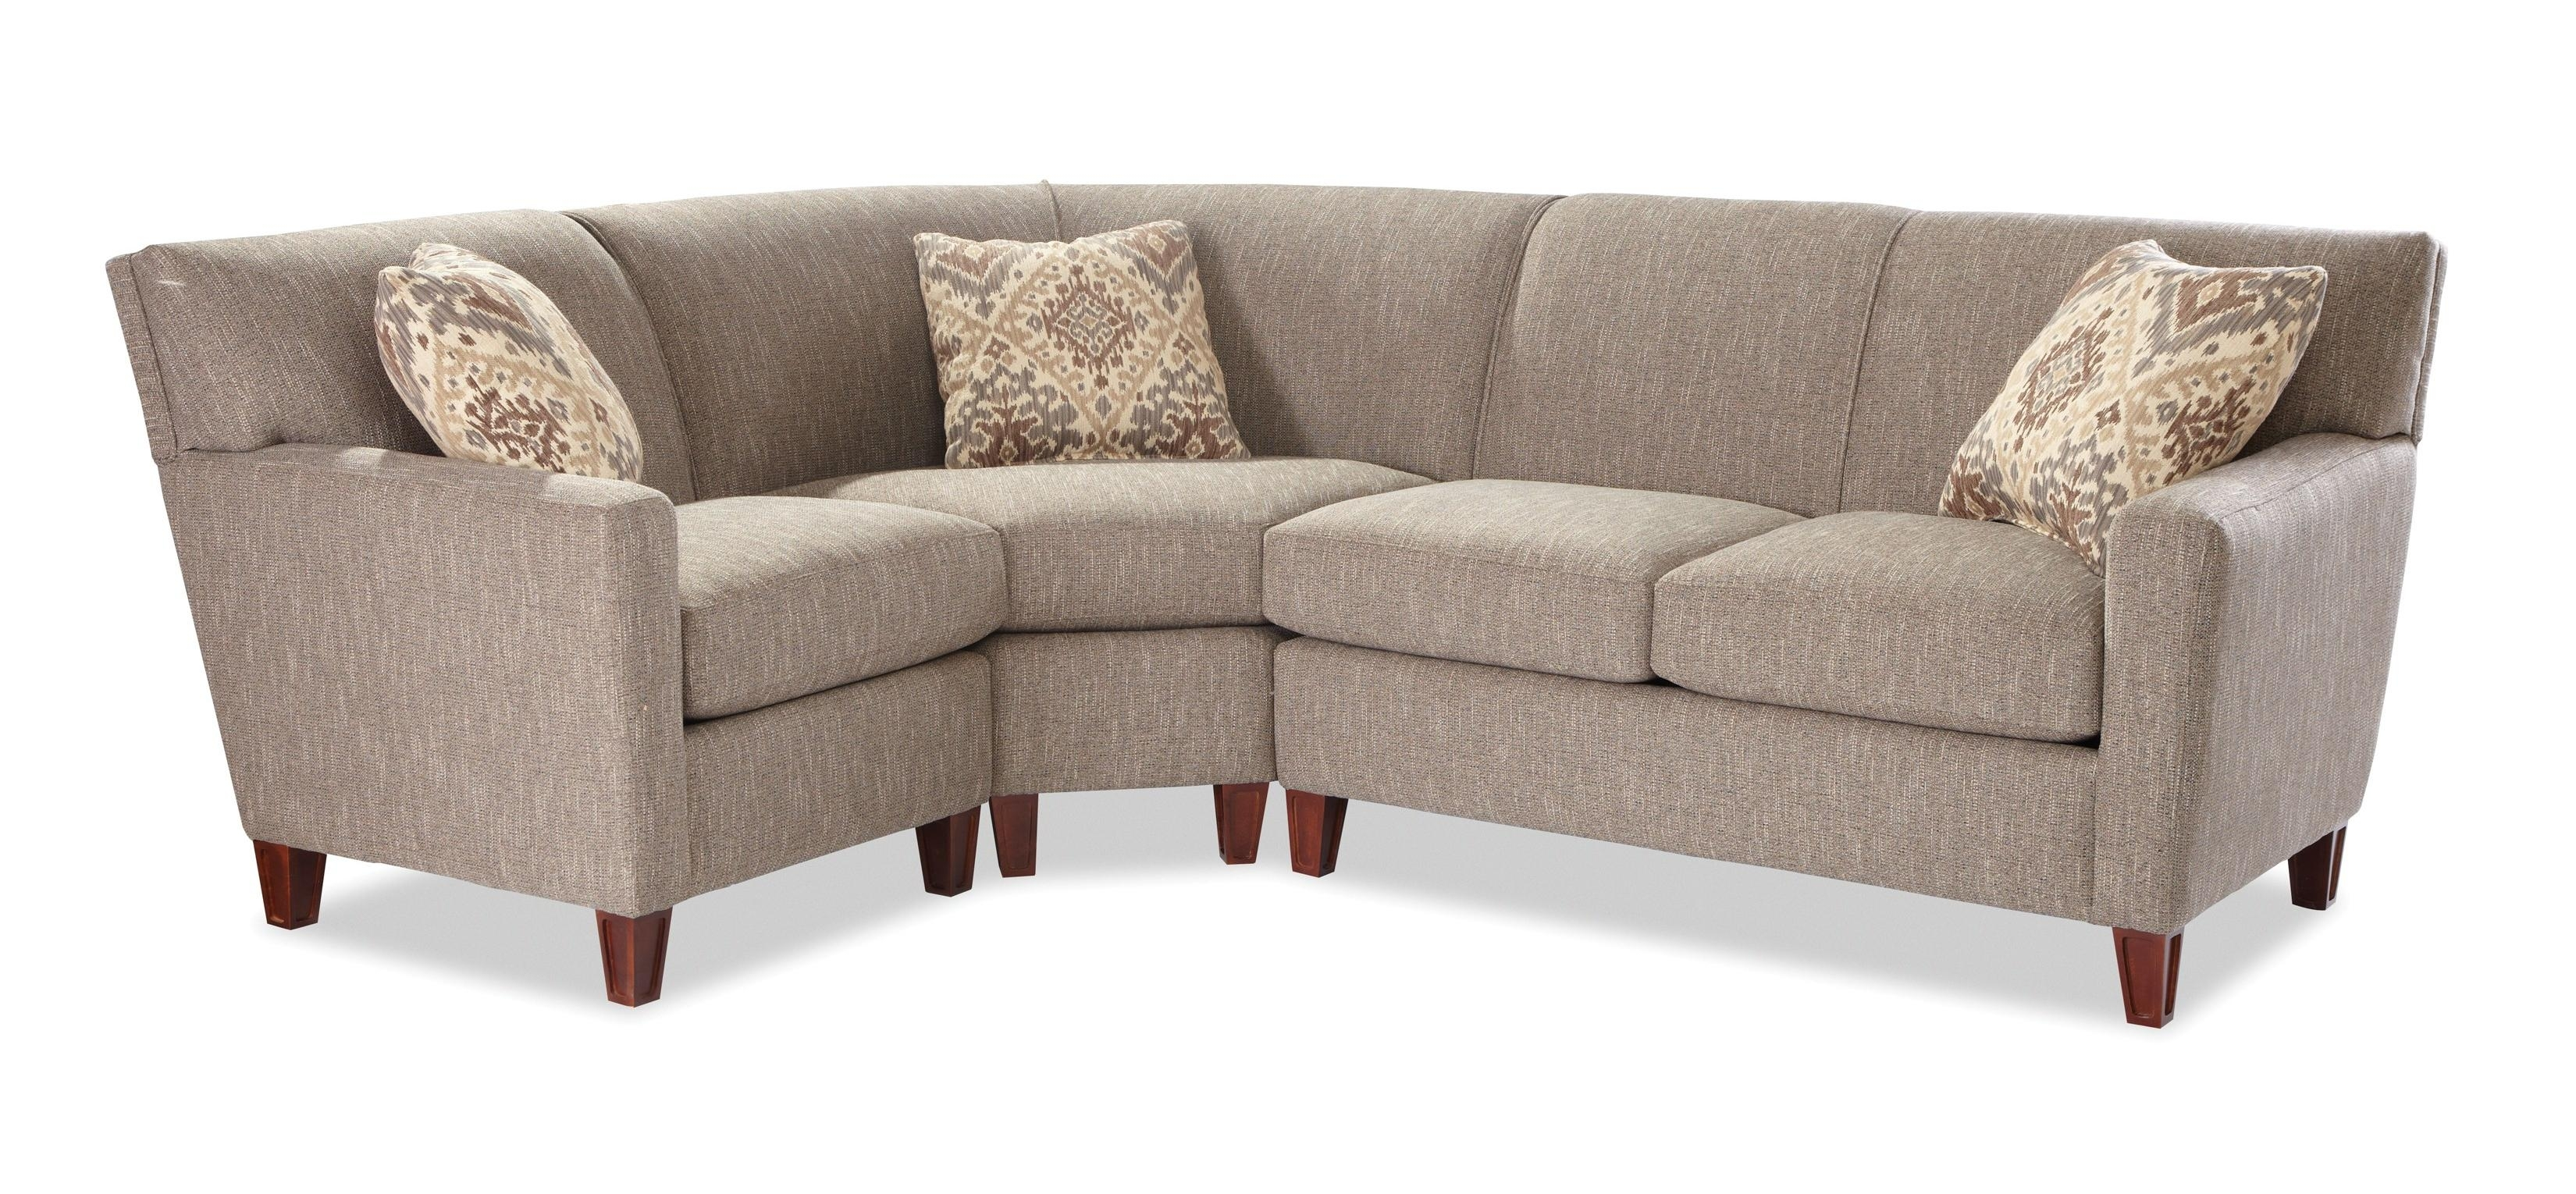 Craftmaster 7864 Three Piece Sectional Sofa With Raf Loveseat Within Josephine 2 Piece Sectionals With Laf Sofa (Image 10 of 25)